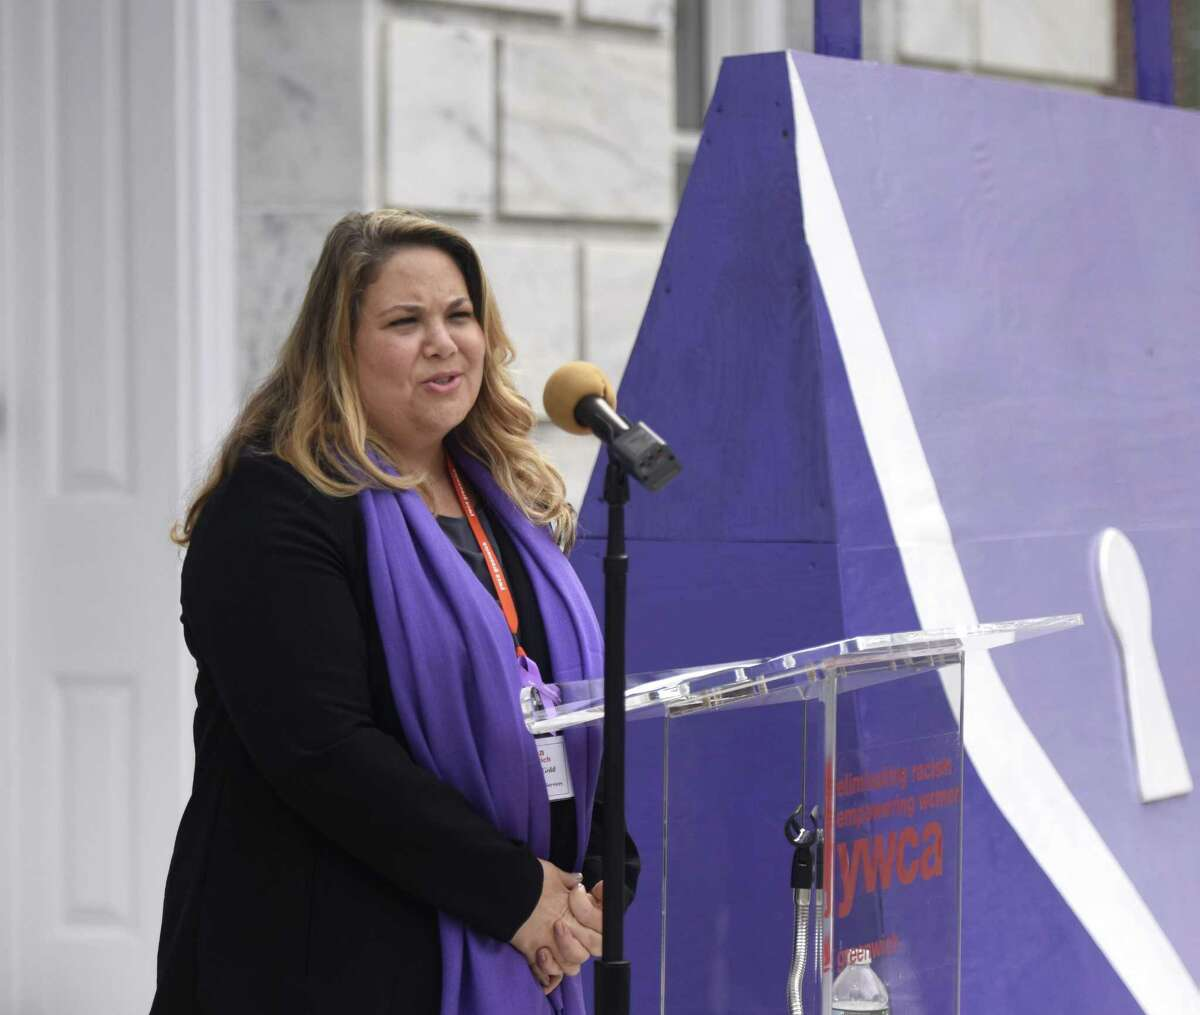 YWCA Greenwich Director of Domestic Abuse Services Meredith Gold speaks during the Domestic Violence Awareness and Prevention Month Kickoff at Town Hall in Greenwich, Conn. Tuesday, Oct. 2, 2018.